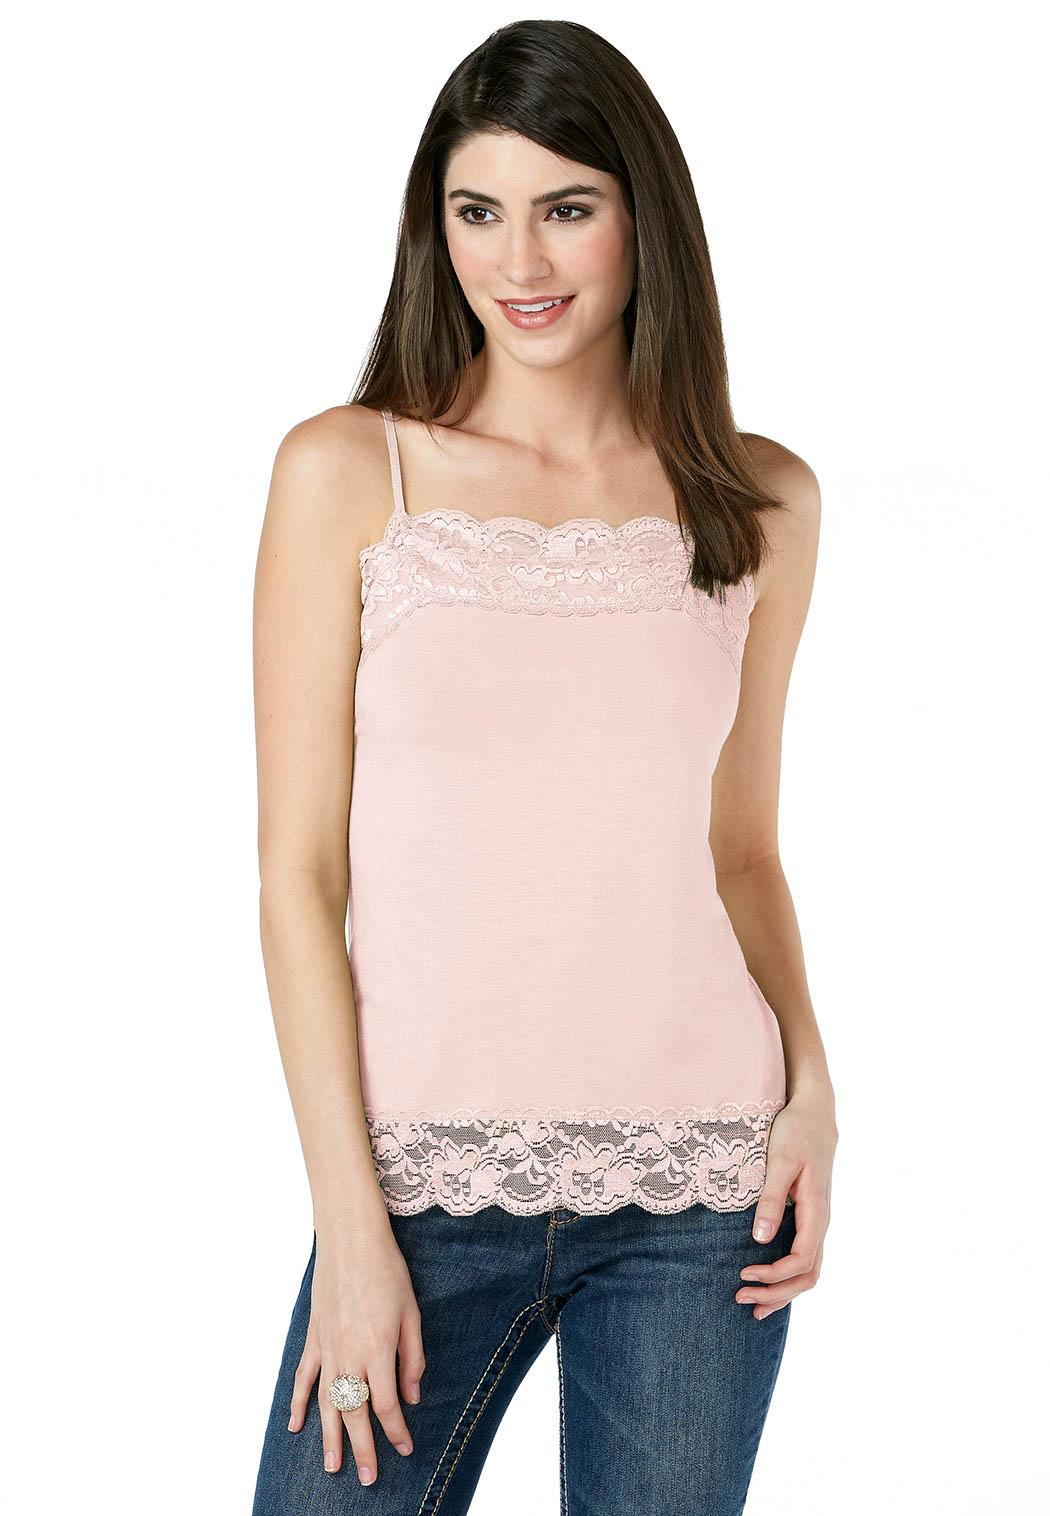 Find great deals on eBay for lace camisoles and tank tops. Shop with confidence.